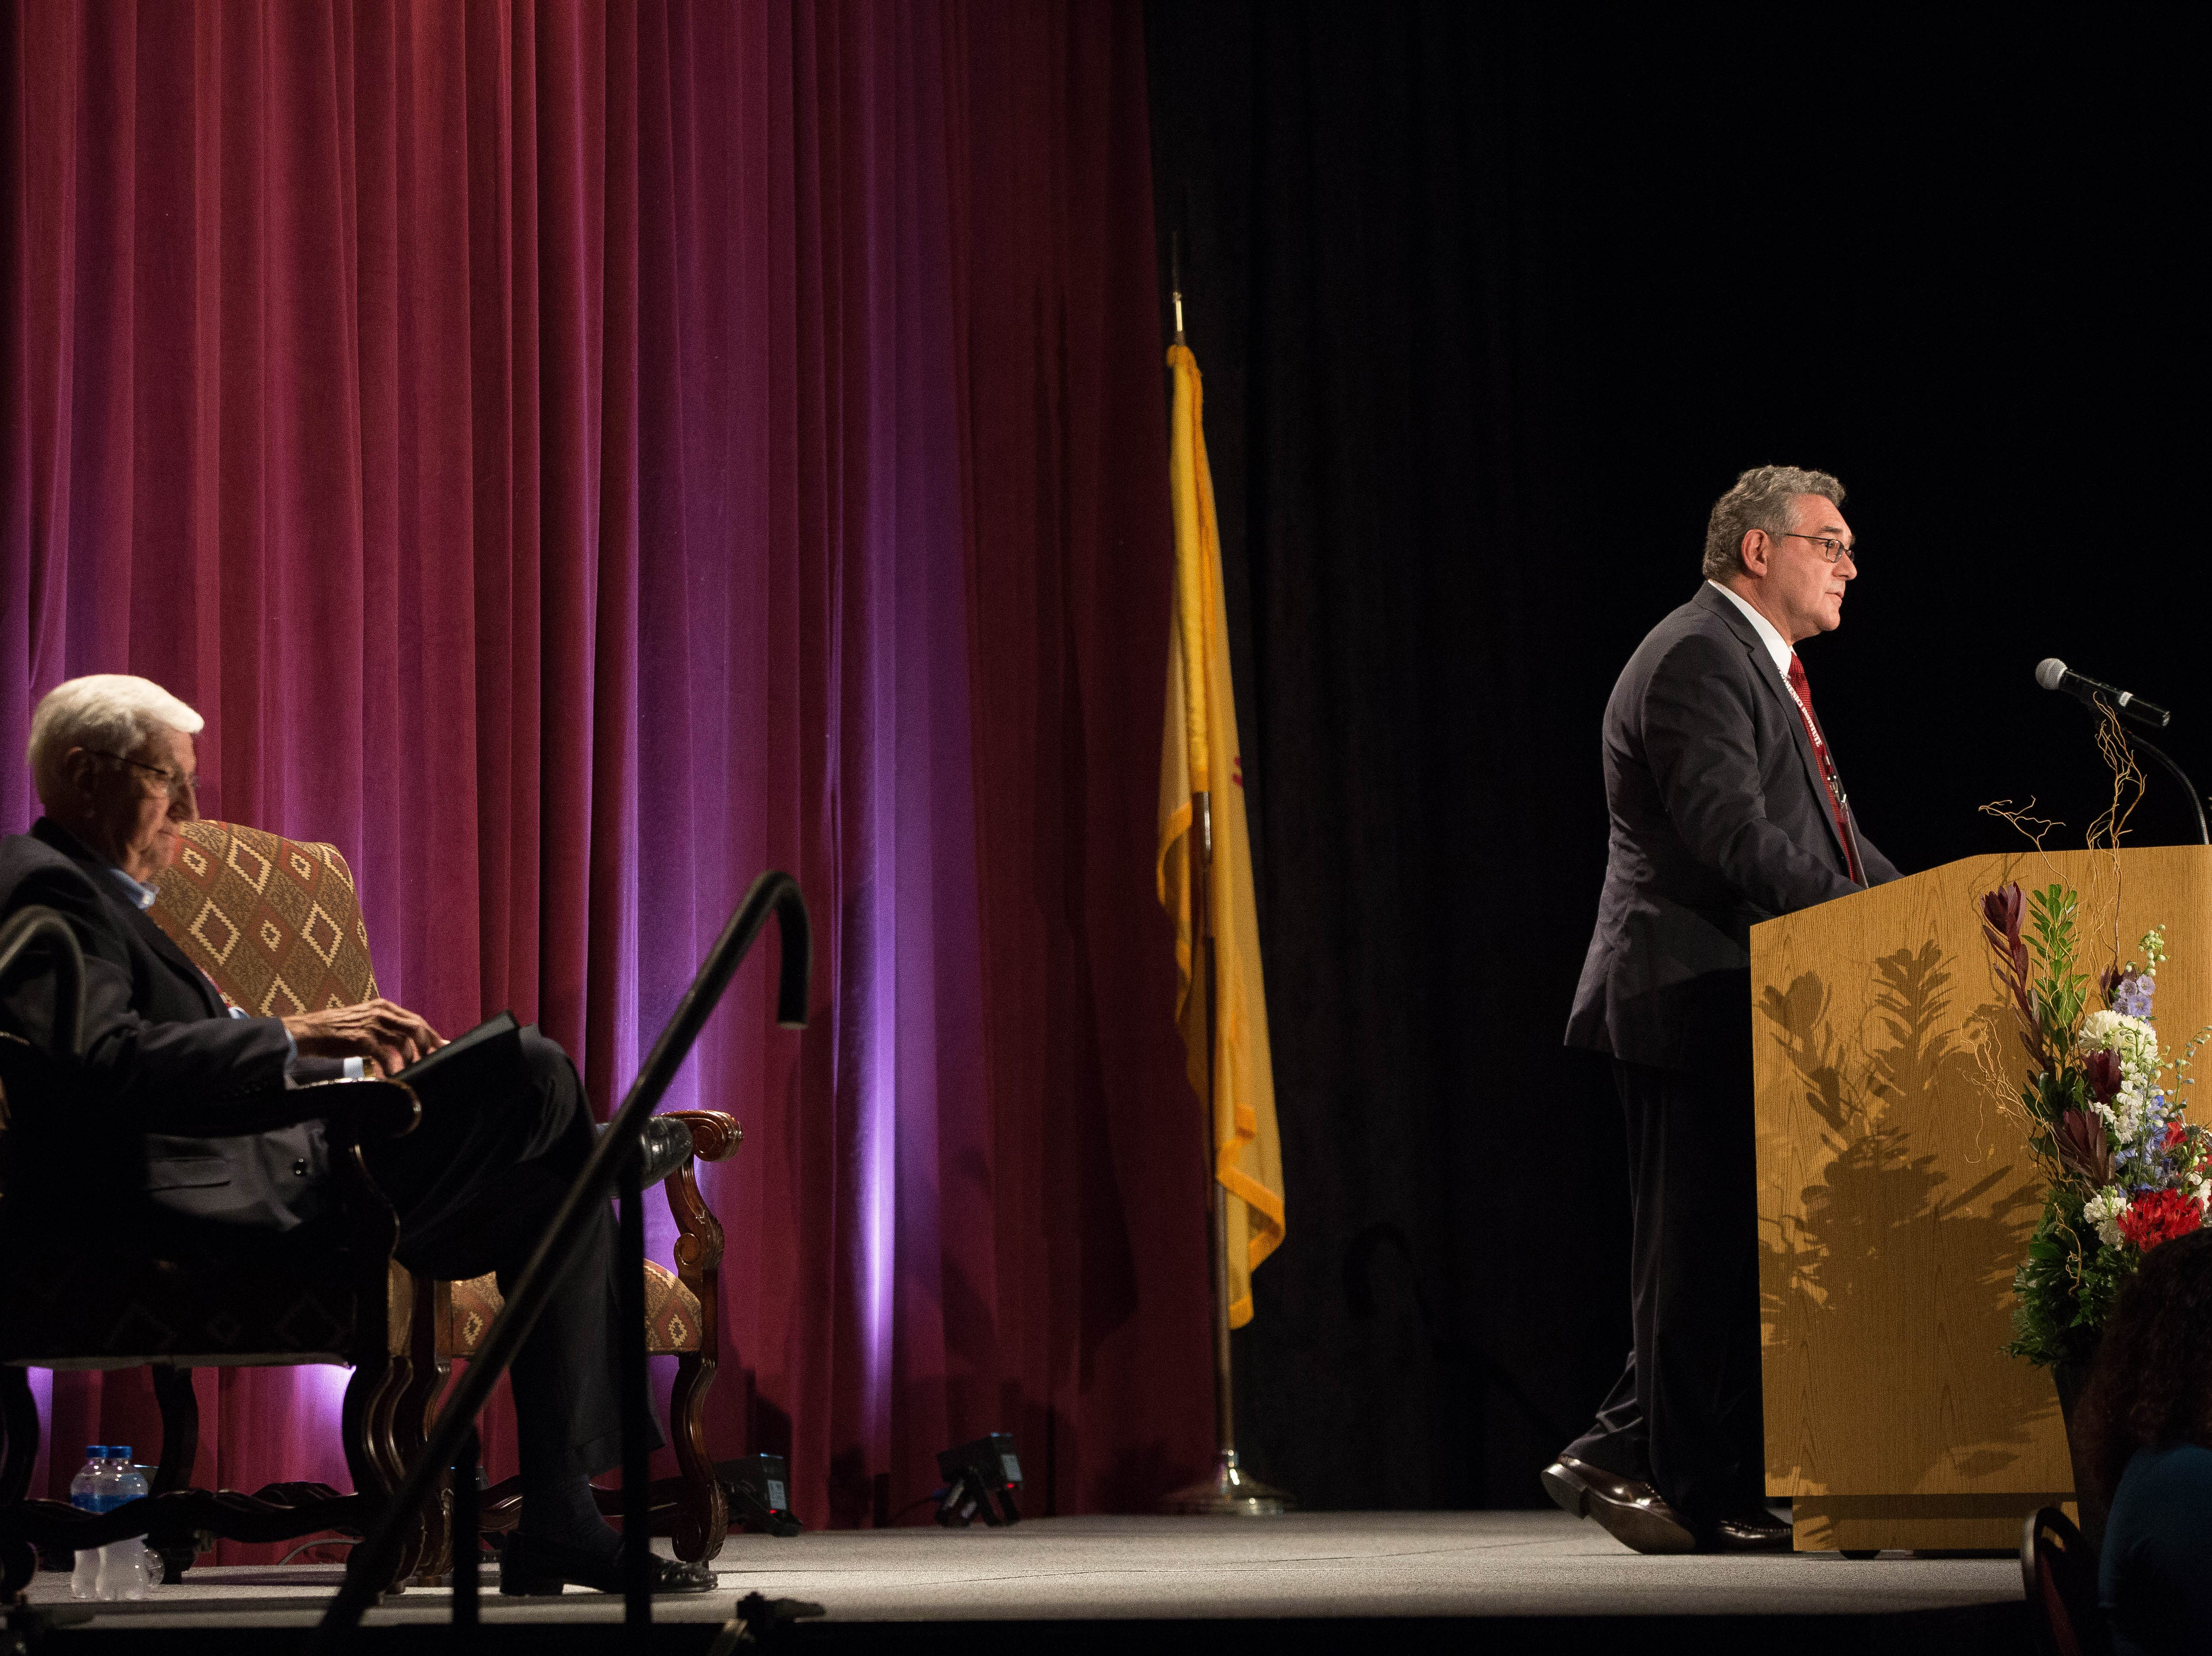 John Floros, right, president of New Mexico State University, speaks to the attendees of the 2018 Domenici Public Policy Conference at the Las Cruces Convention Center, Wednesday, Sept. 12, 2018.